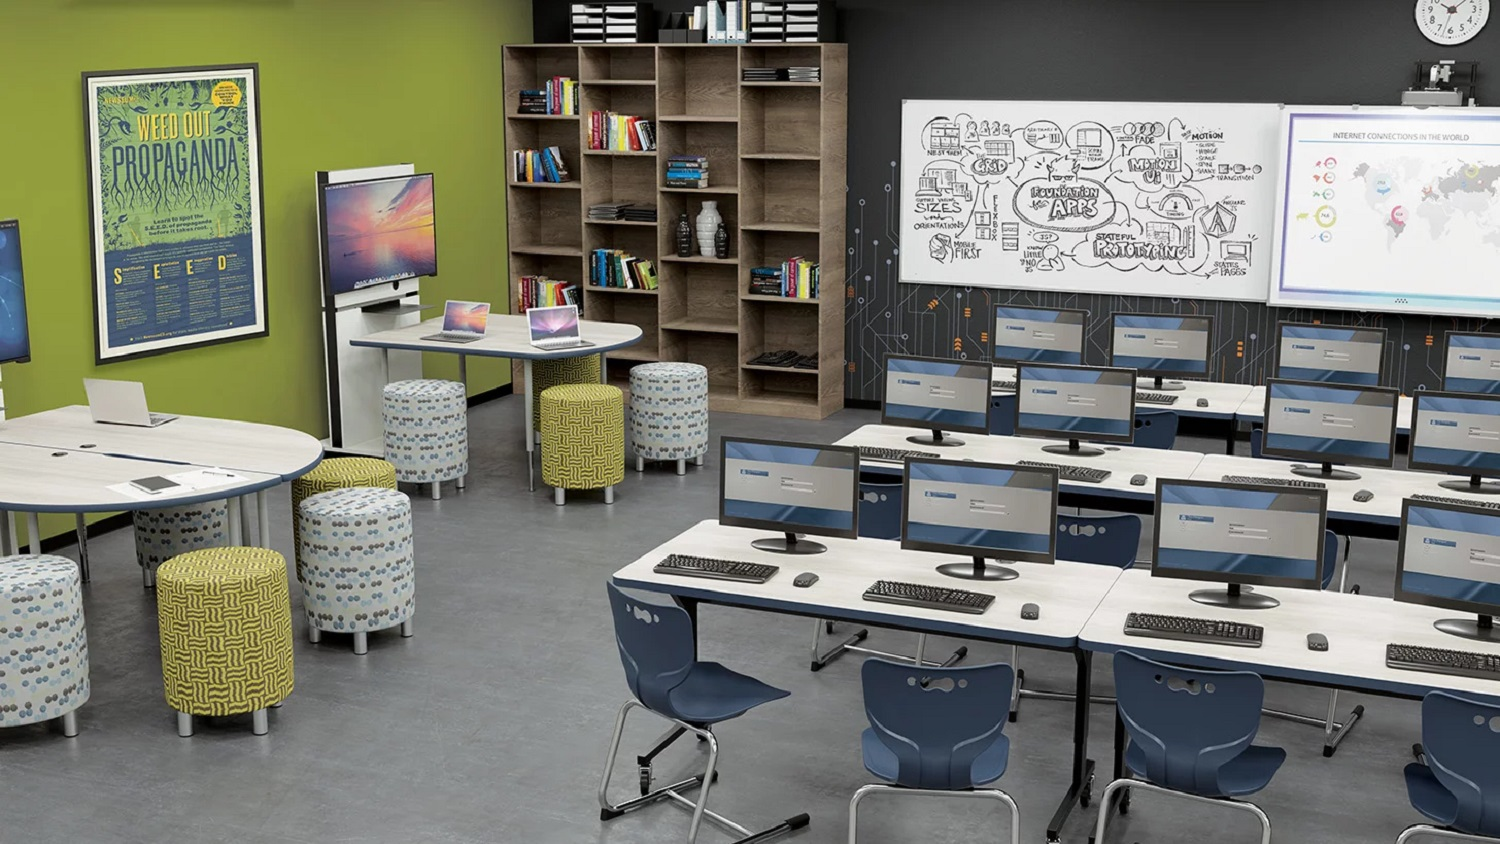 Flexible Media Computer Lab